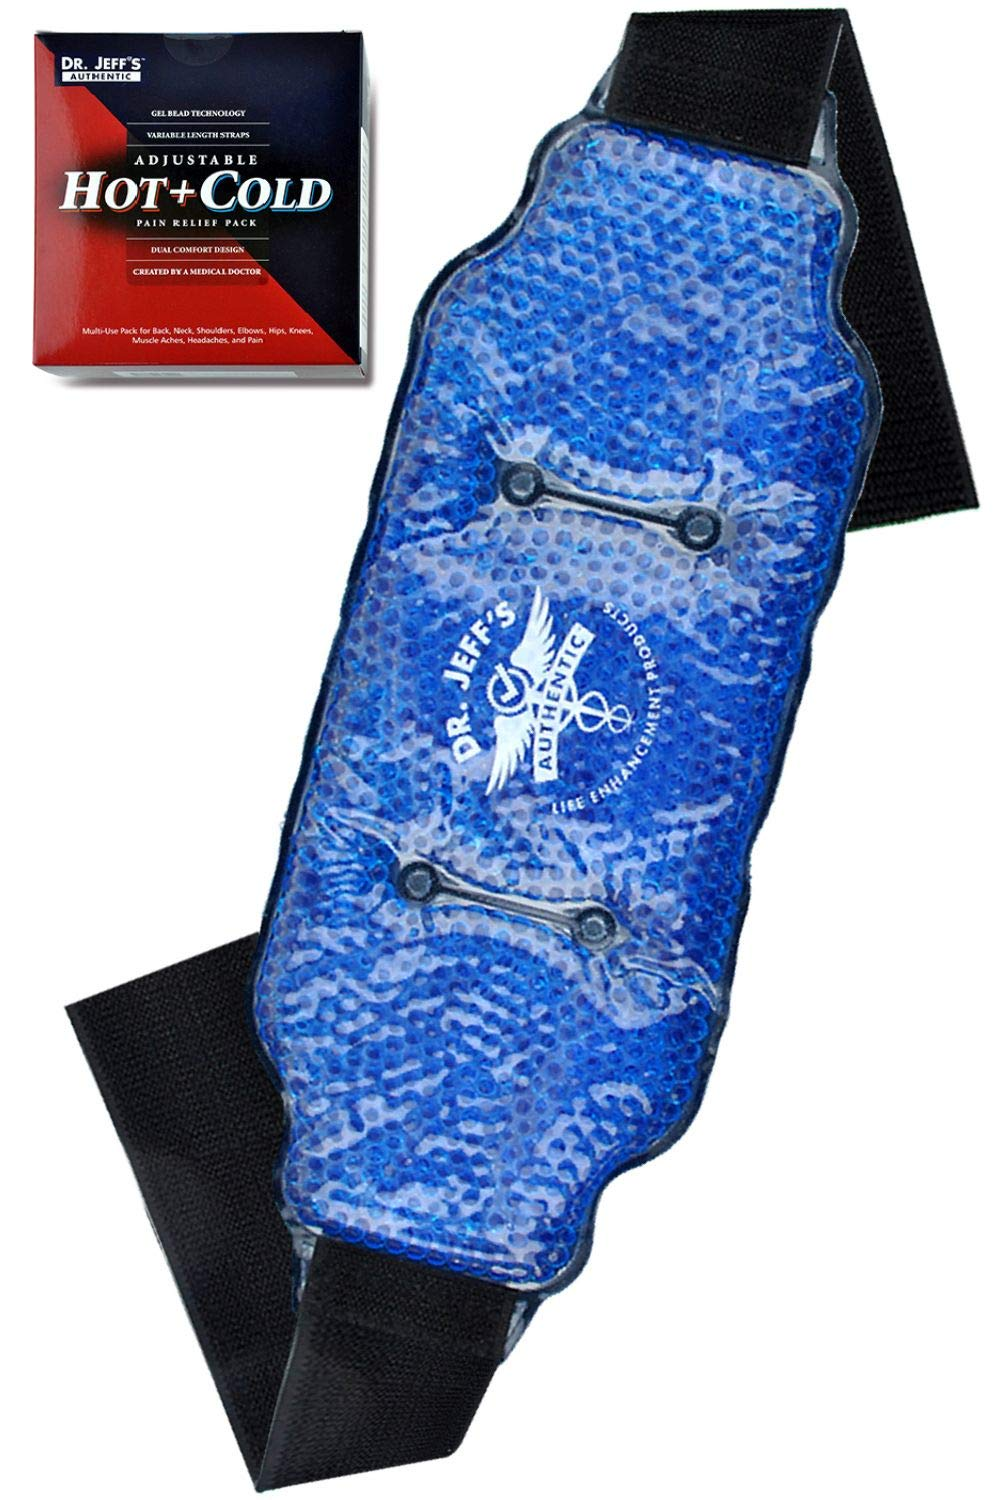 Medical Grade Pain Relief Flexible Ice Pack for Injuries | Dual Sided Soft Plush Hot Pack + Flexible Gel Beads Reusable Ice Pack | Great for Knee, Sciatica, Back, Neck Pain | Bonus Extension Straps by DR. JEFF'S AUTHENTIC